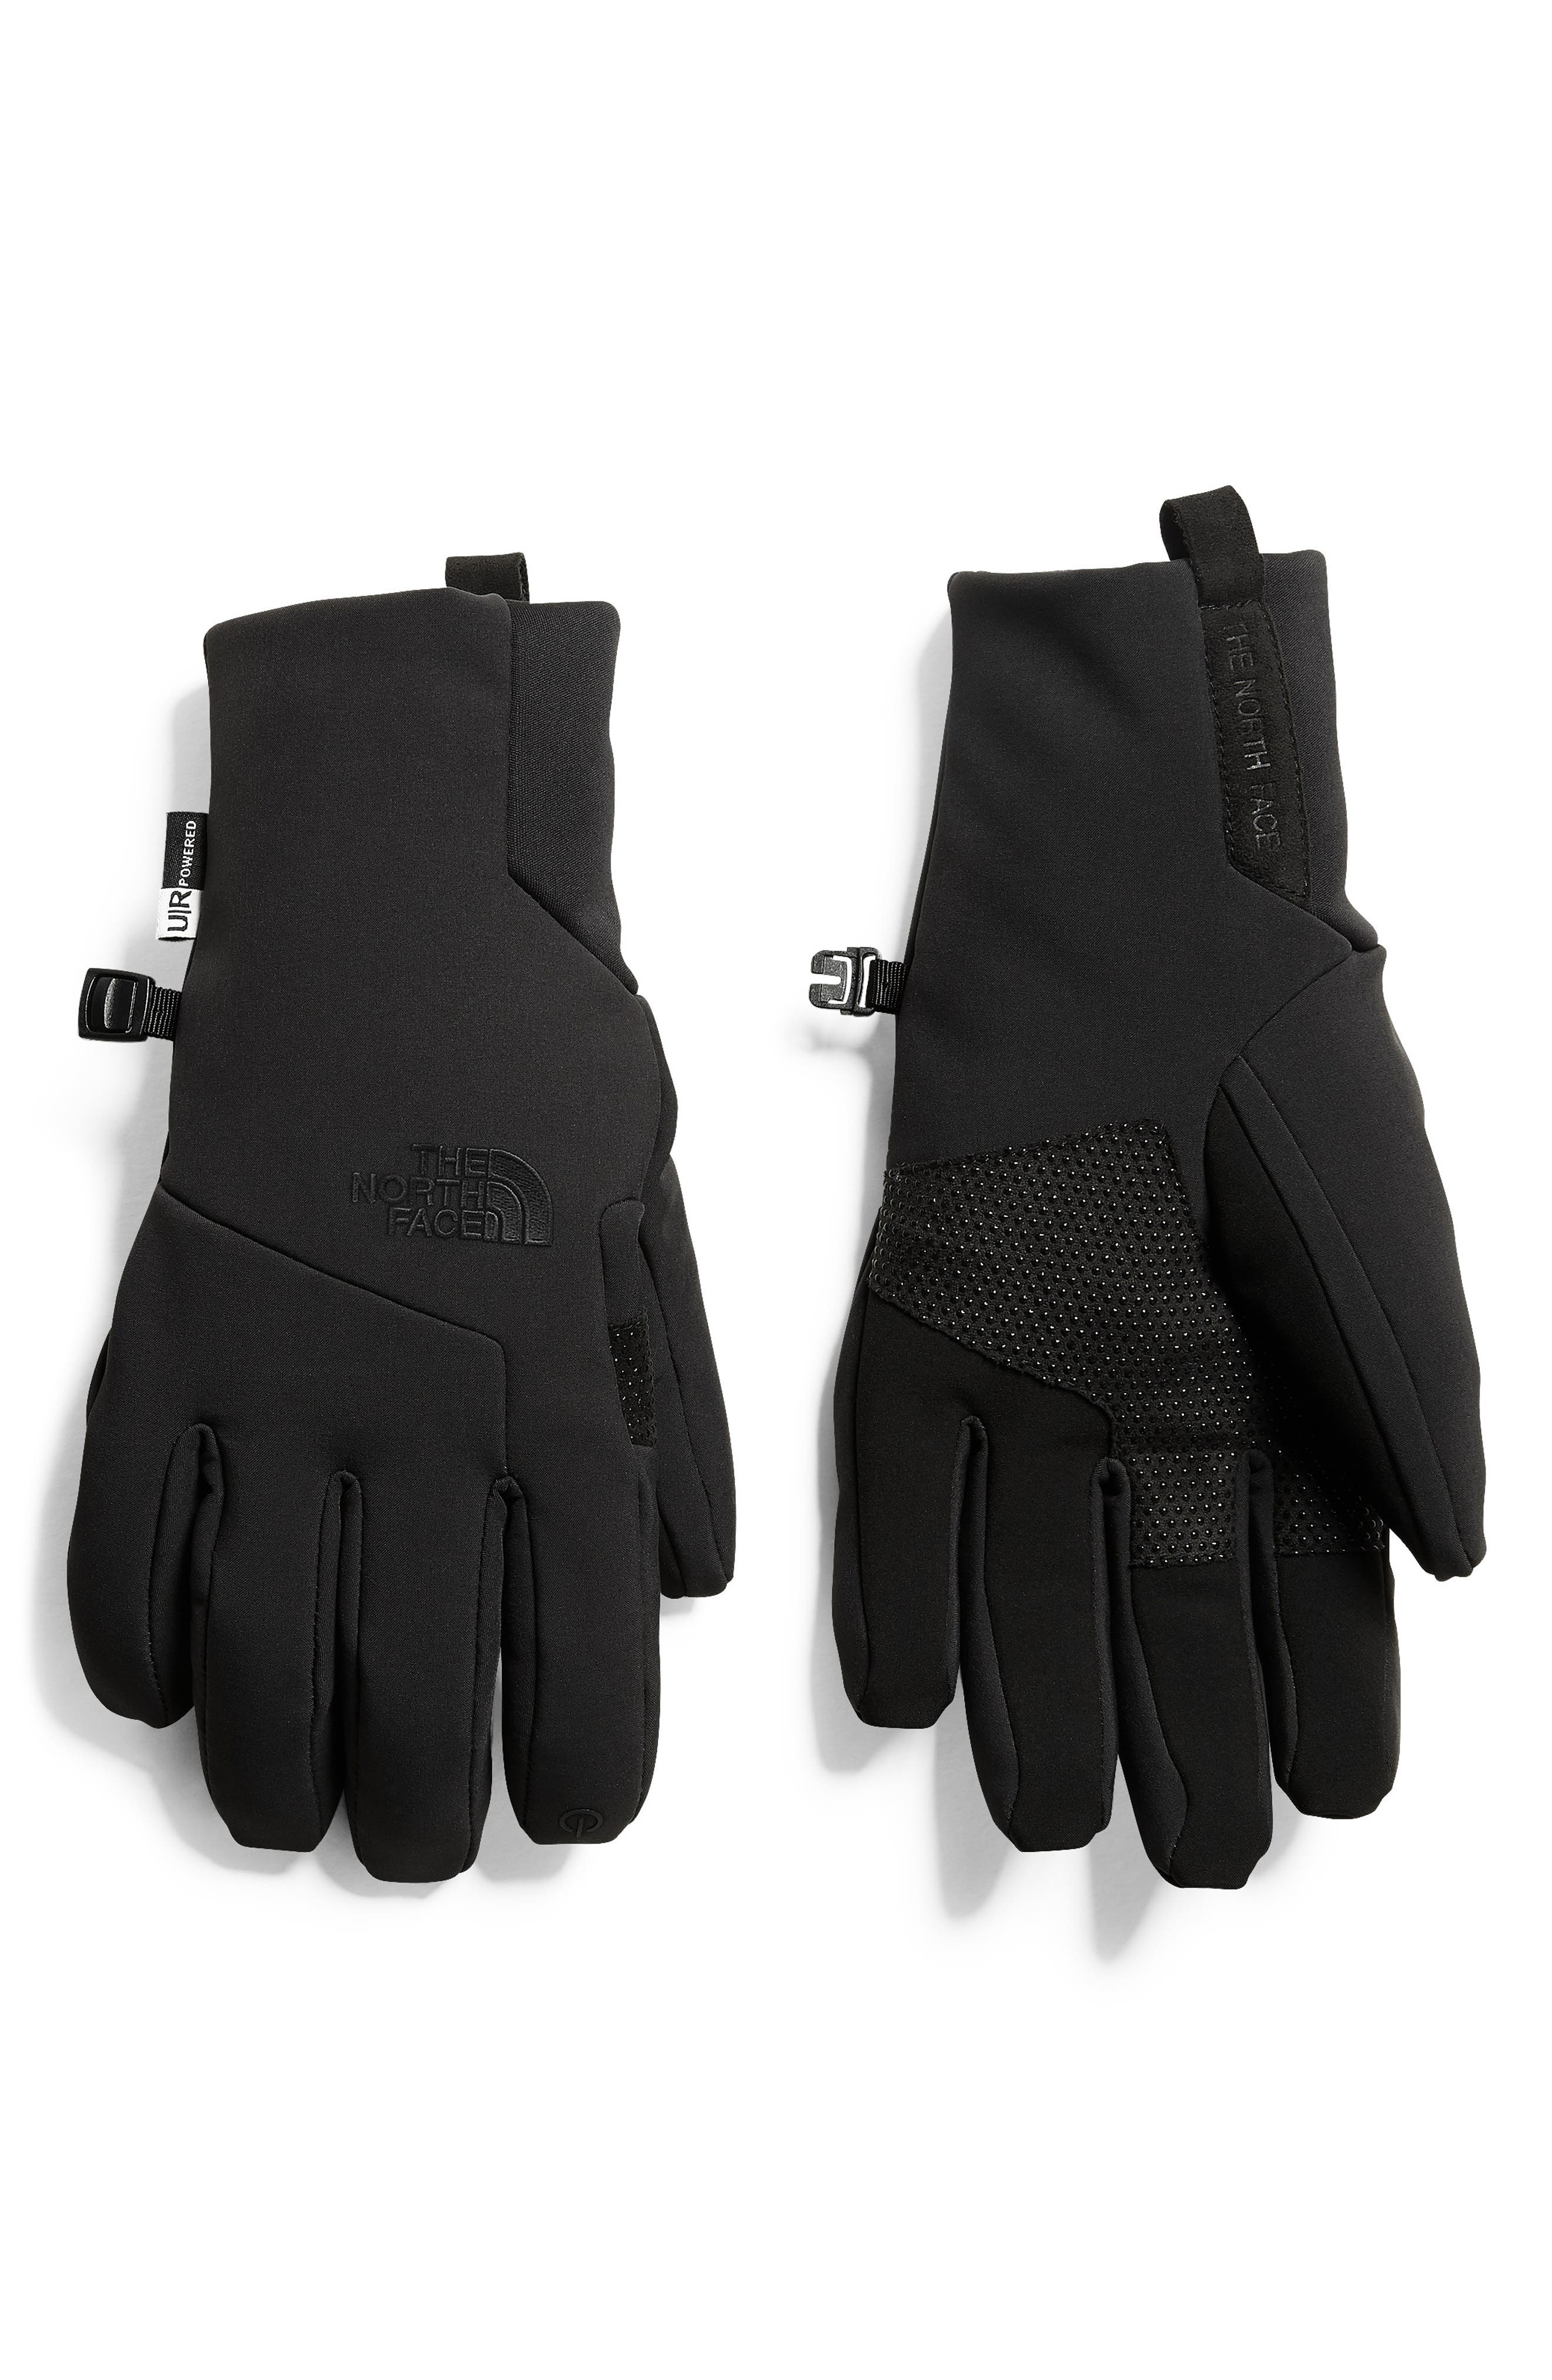 THE NORTH FACE,                             Etip Apex Gloves,                             Main thumbnail 1, color,                             001